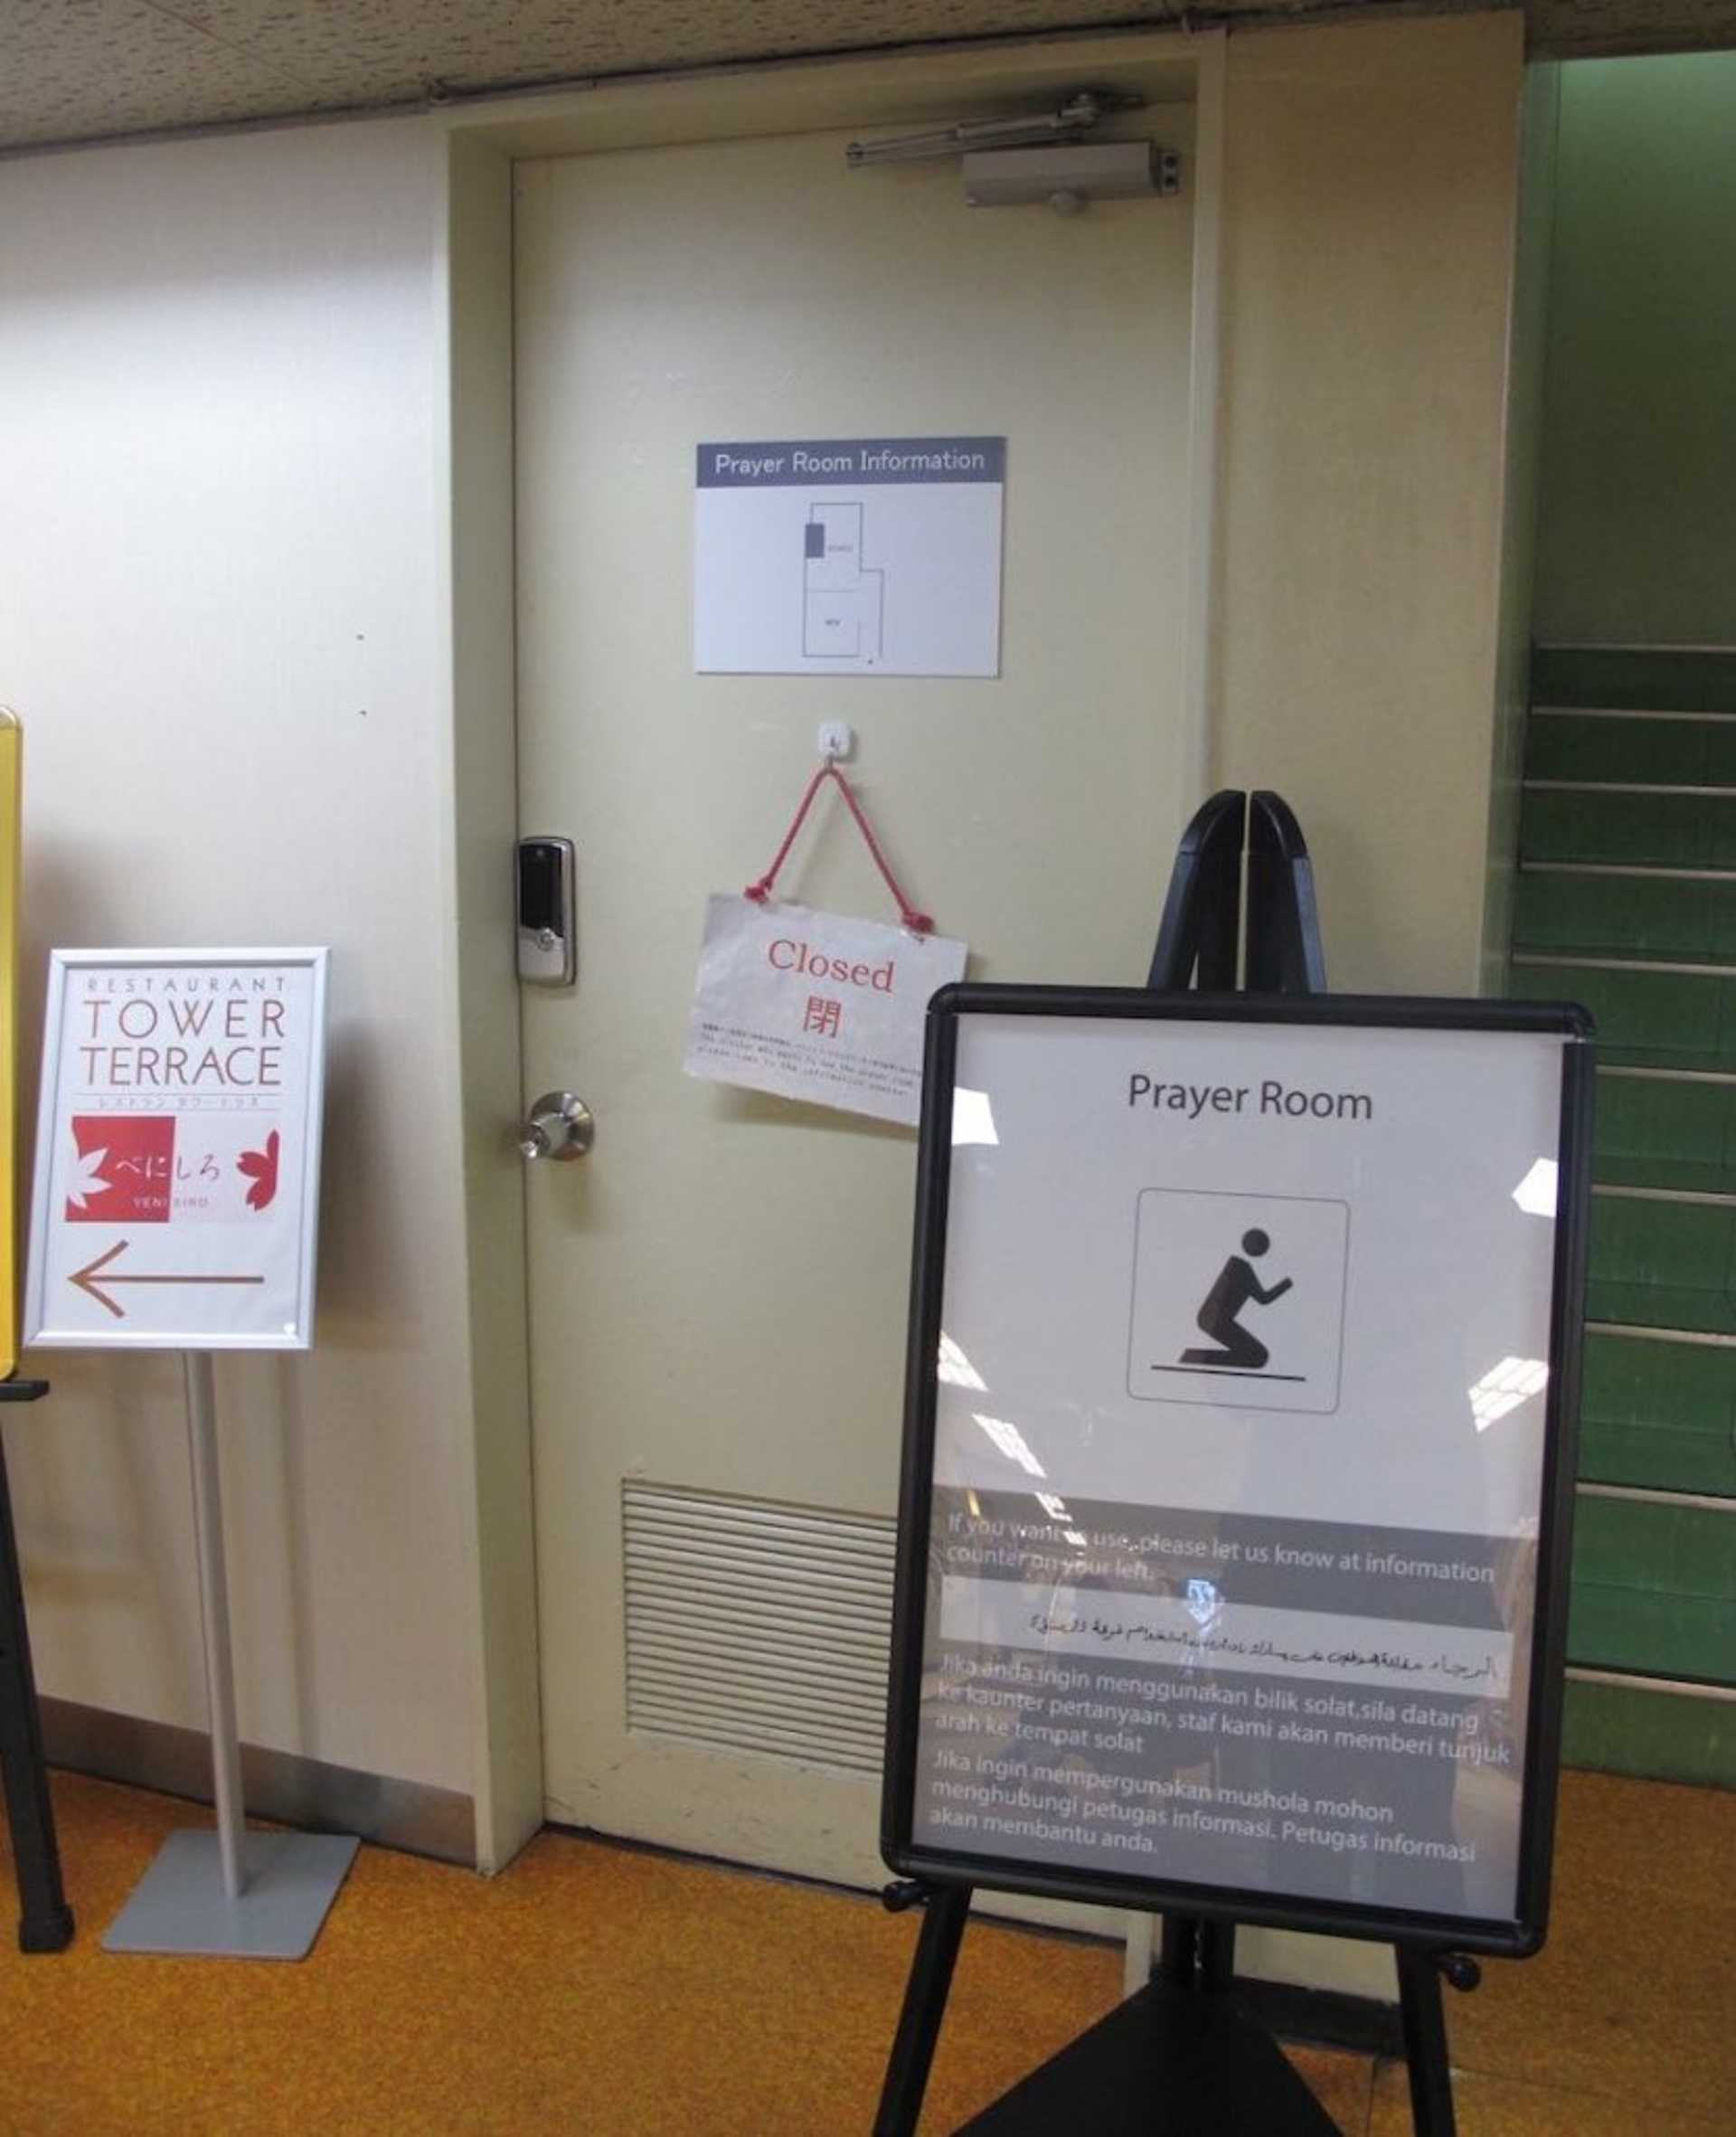 The prayer room can be found next to the Kansai Tourist Information Centre.